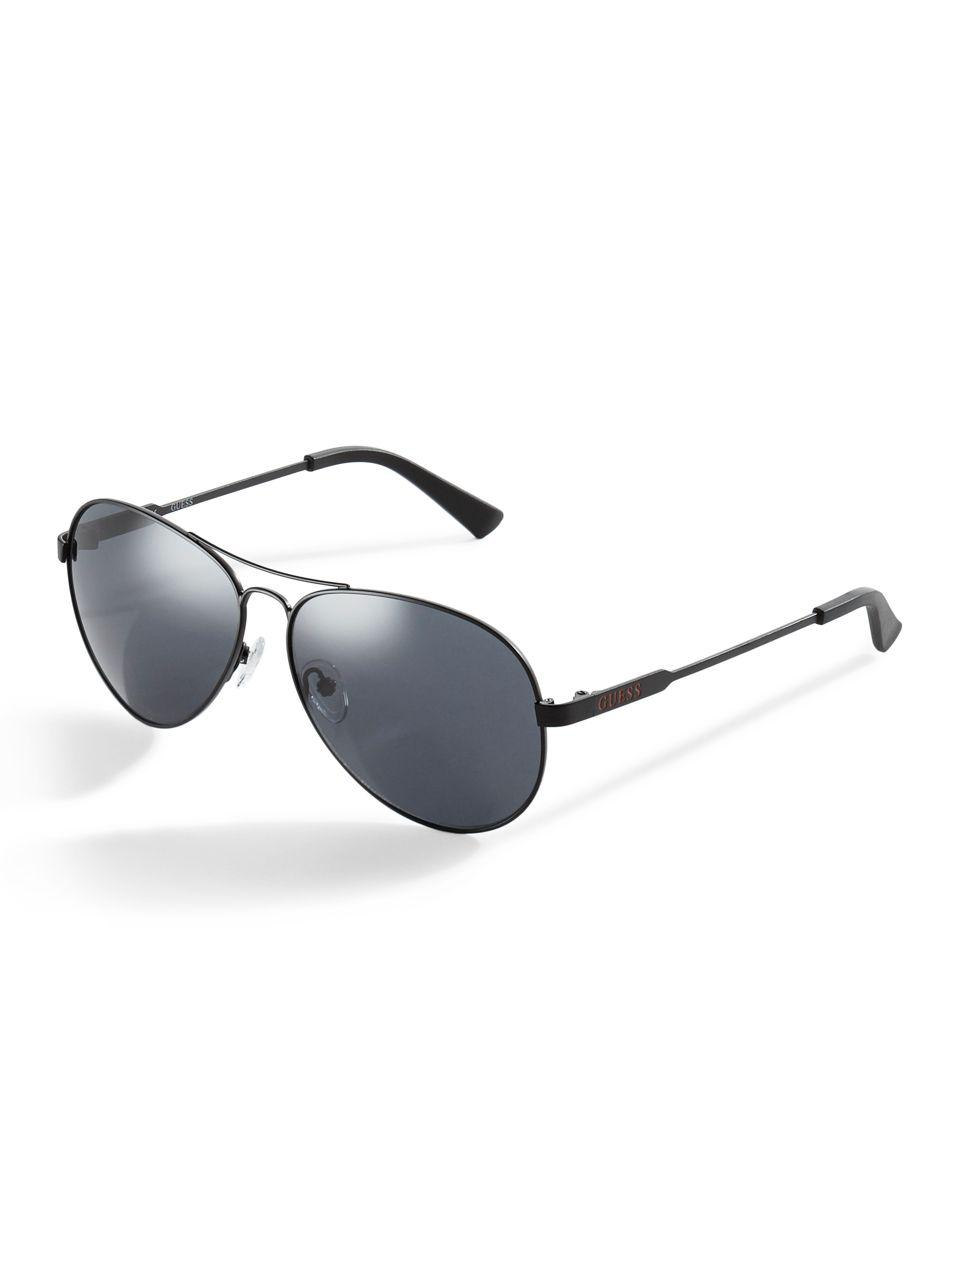 009489cb203f2 Lyst - Guess Classic Aviator Sunglasses in Black for Men - Save 23%